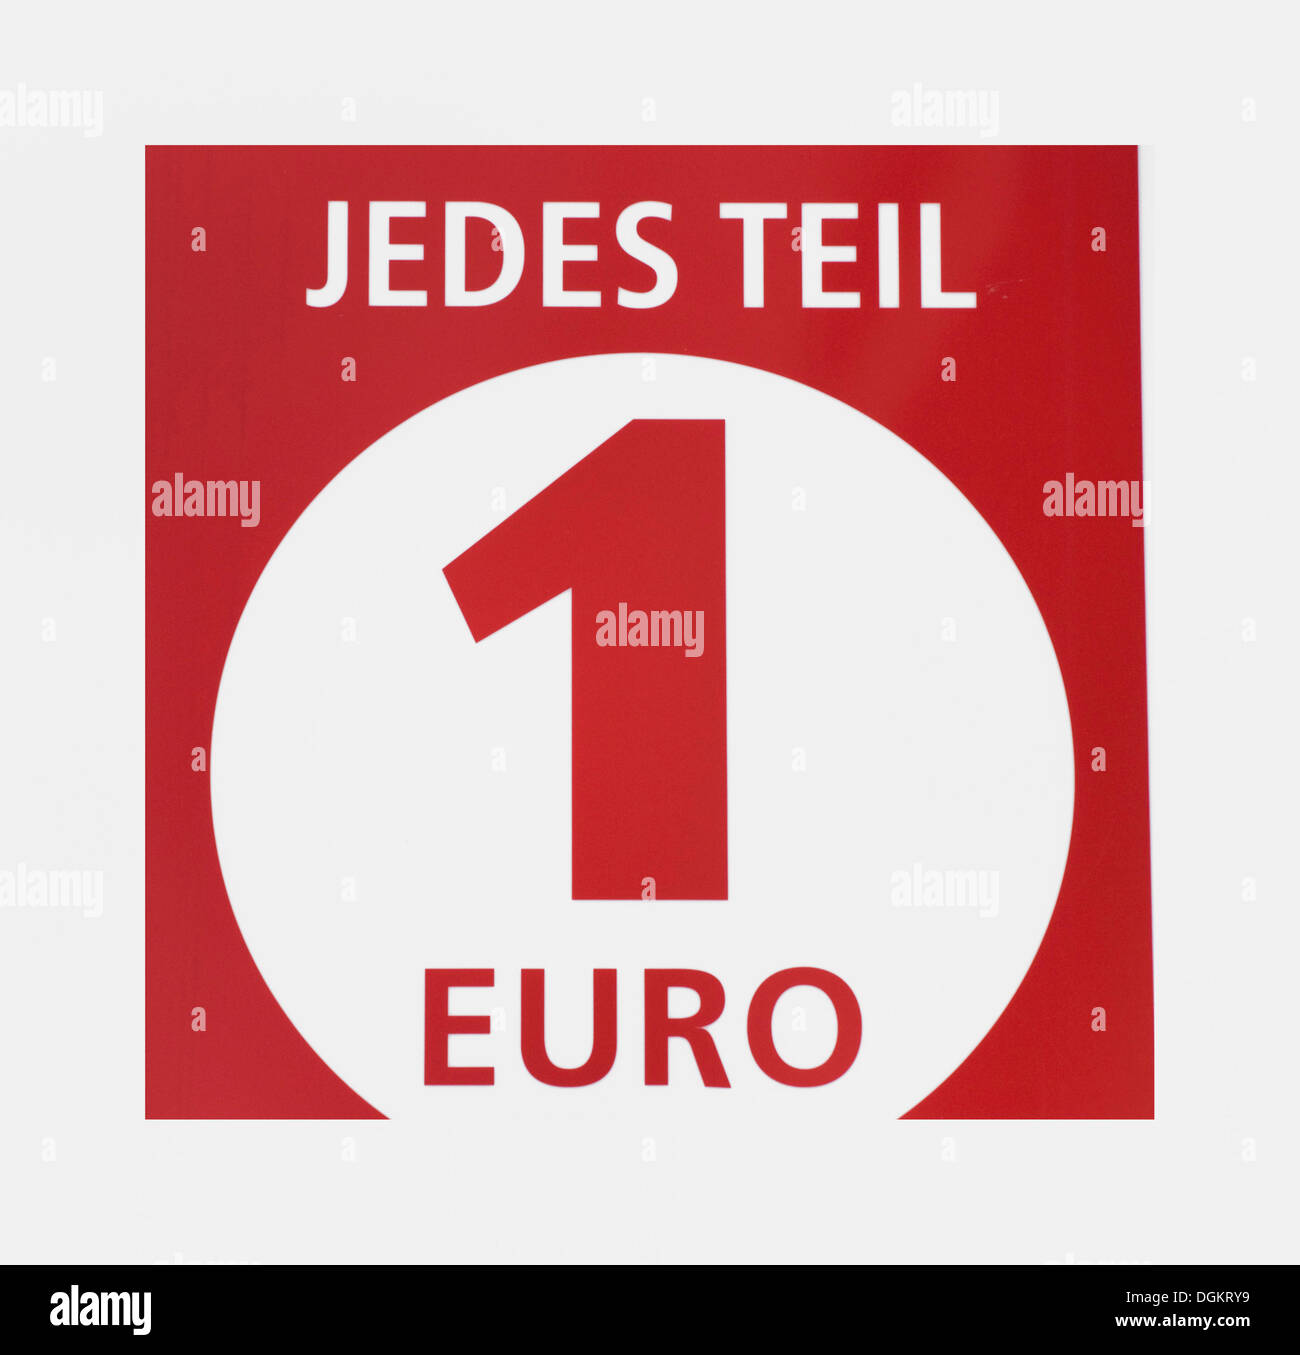 Jedes Teil 1 Euro, German for: every item 1 Euro, euro shop, discount - Stock Image